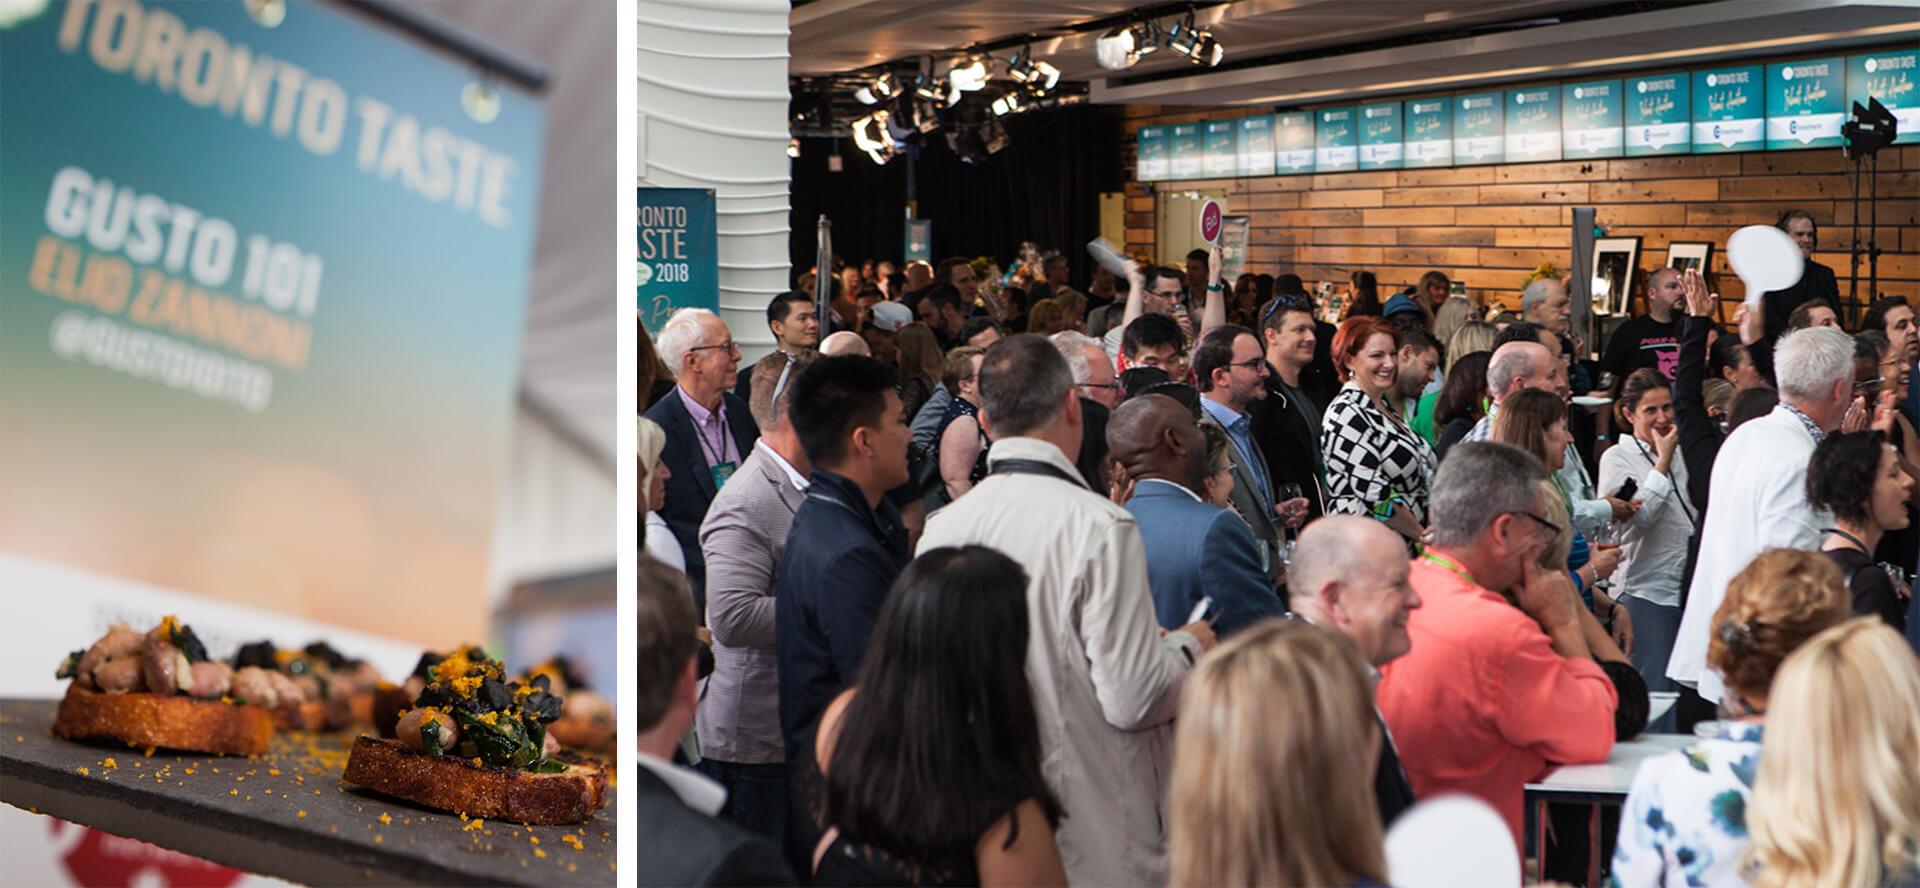 Left: A variety of ingredients on round-shaped toast, with a banner for Toronto Taste Festival in the background.  Right: People at the Toronto Taste festival in 2018 bidding on prizes during an auction.